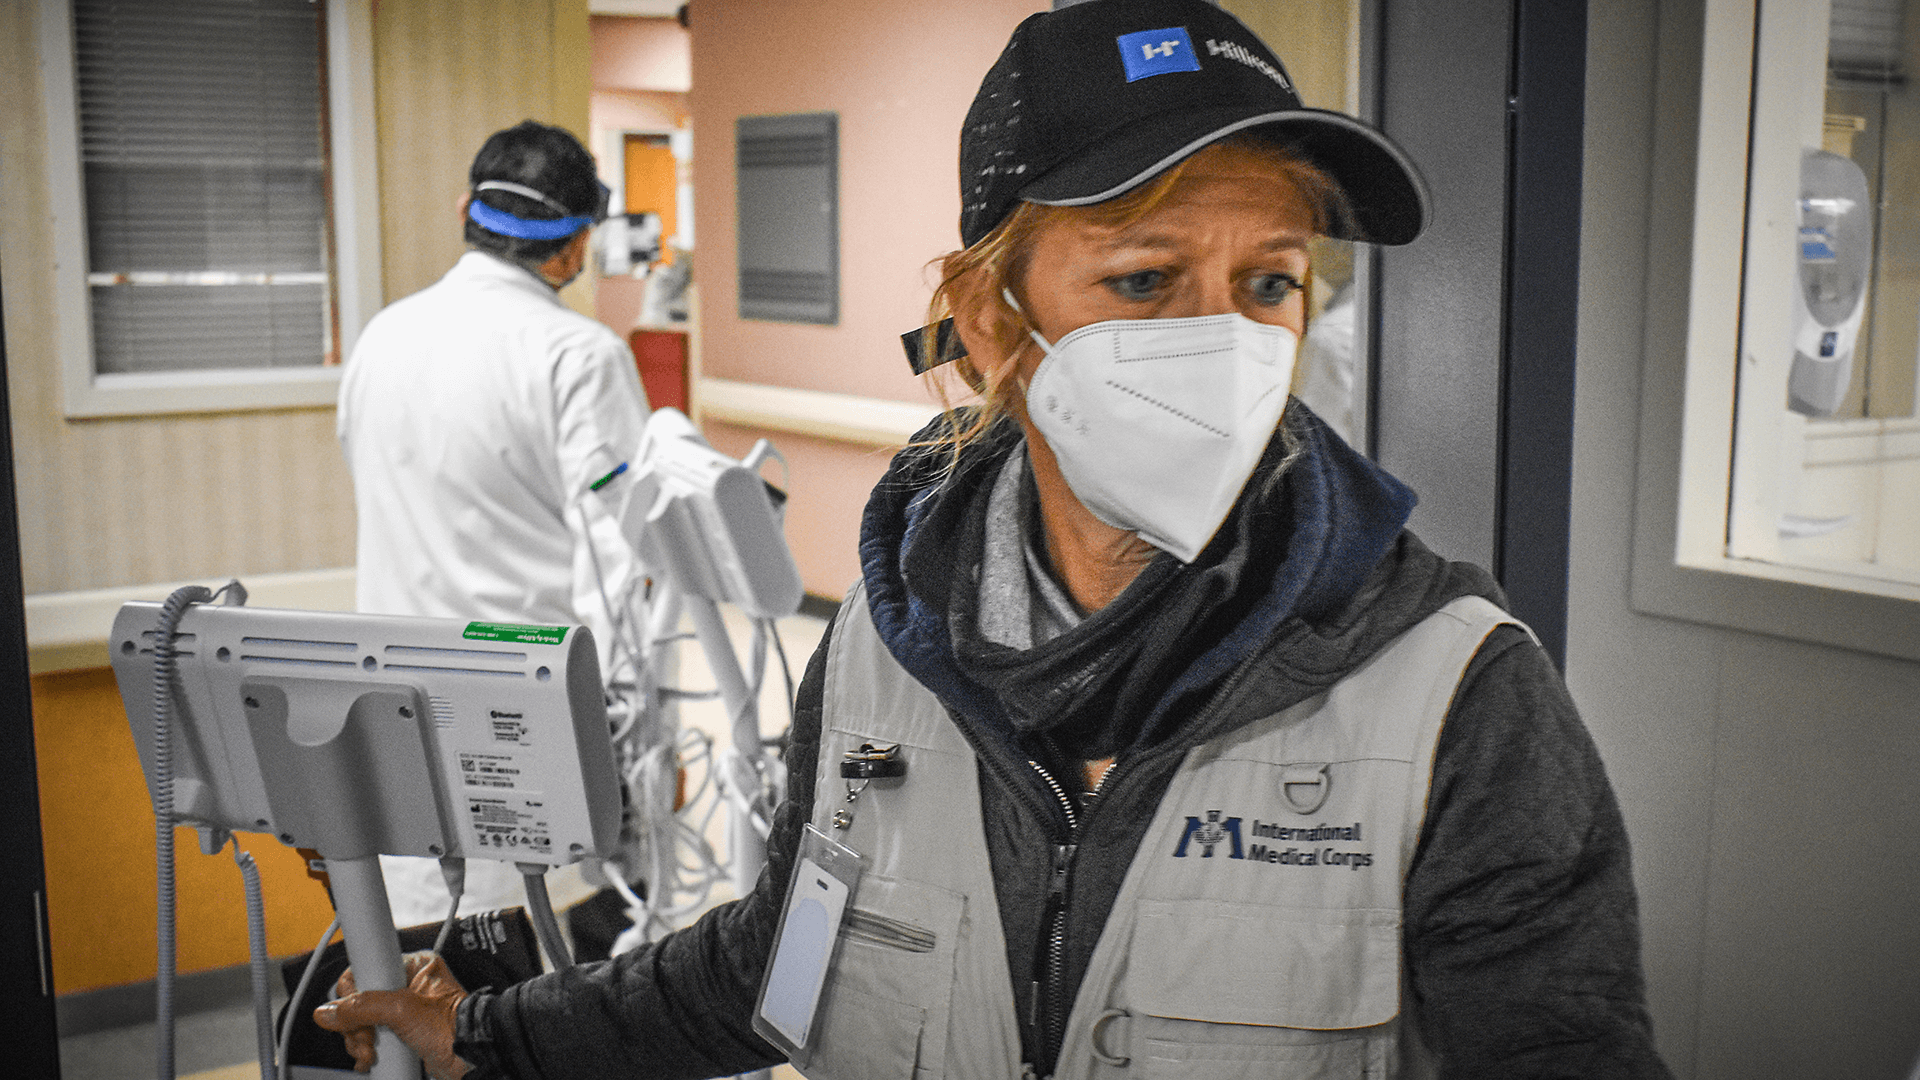 As the team lead for International Medical Corps' COVID-19 response in New York City at the height of the pandemic, Sue Mangicaro worked around the clock to get as many supplies to the city's overwhelmed hospitals as possible. Here, she works with the team to deliver 32 critically needed monitors to Flushing Hospital Medical Center and Jamaica Hospital Medical Center, both part of the MediSys Health Network.